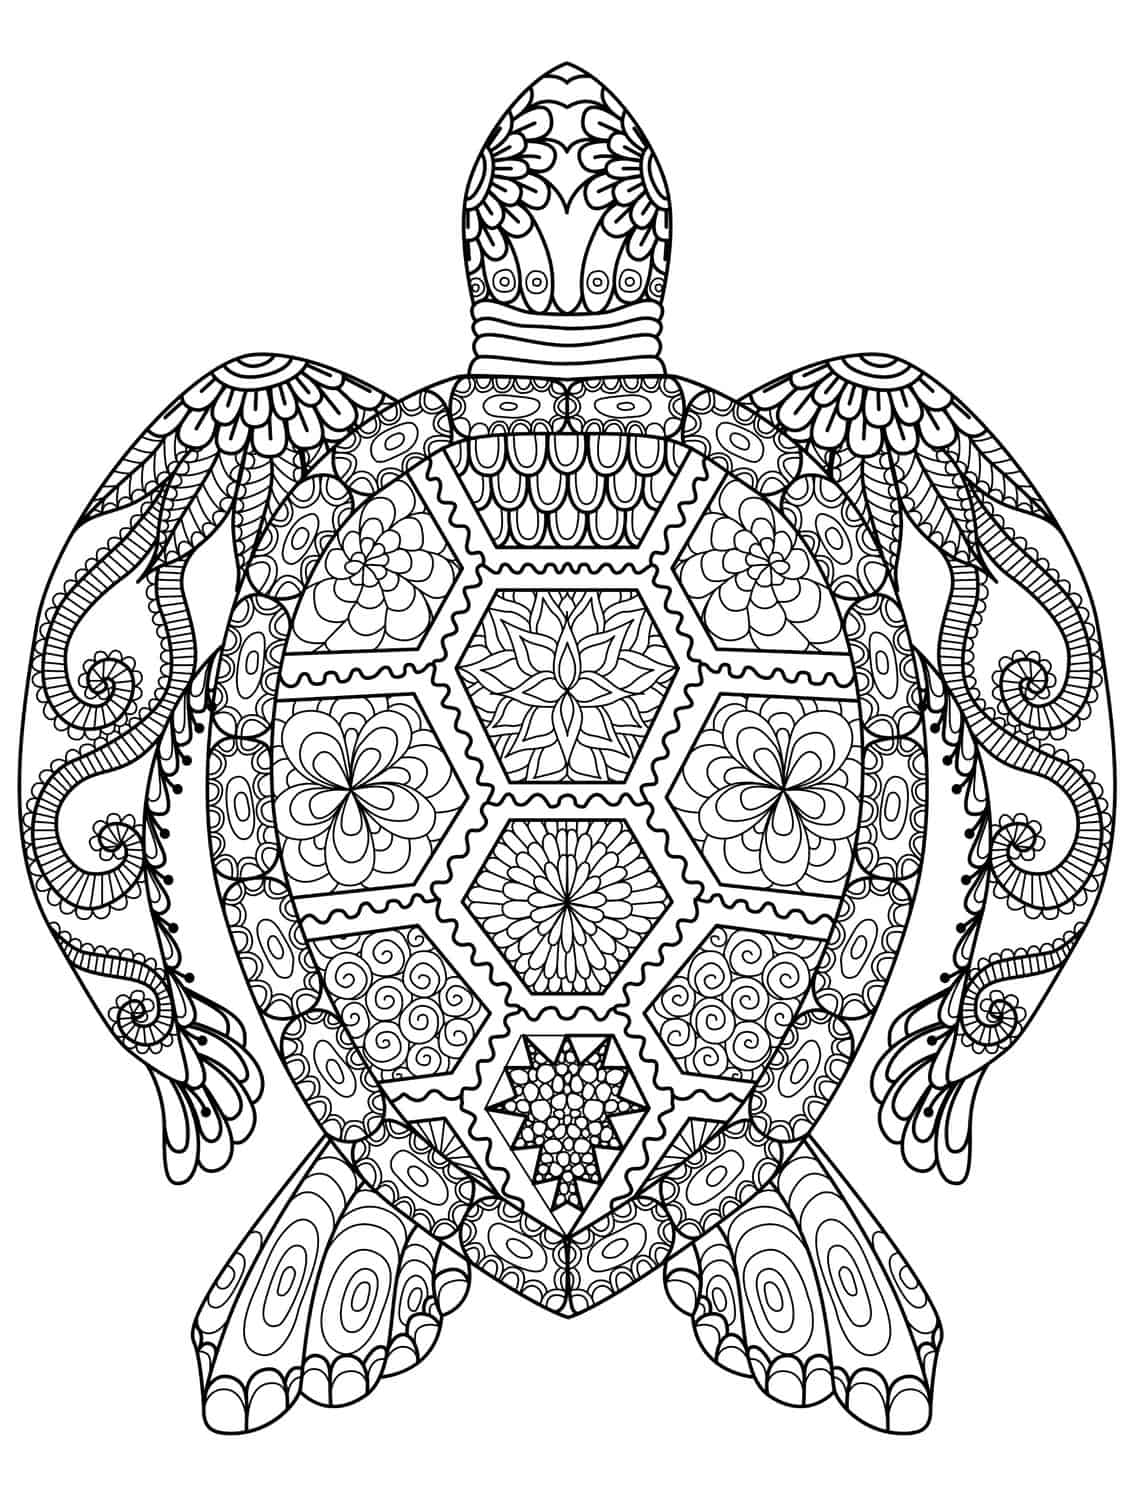 coloring adults free coloring book pages for adults coloring adults